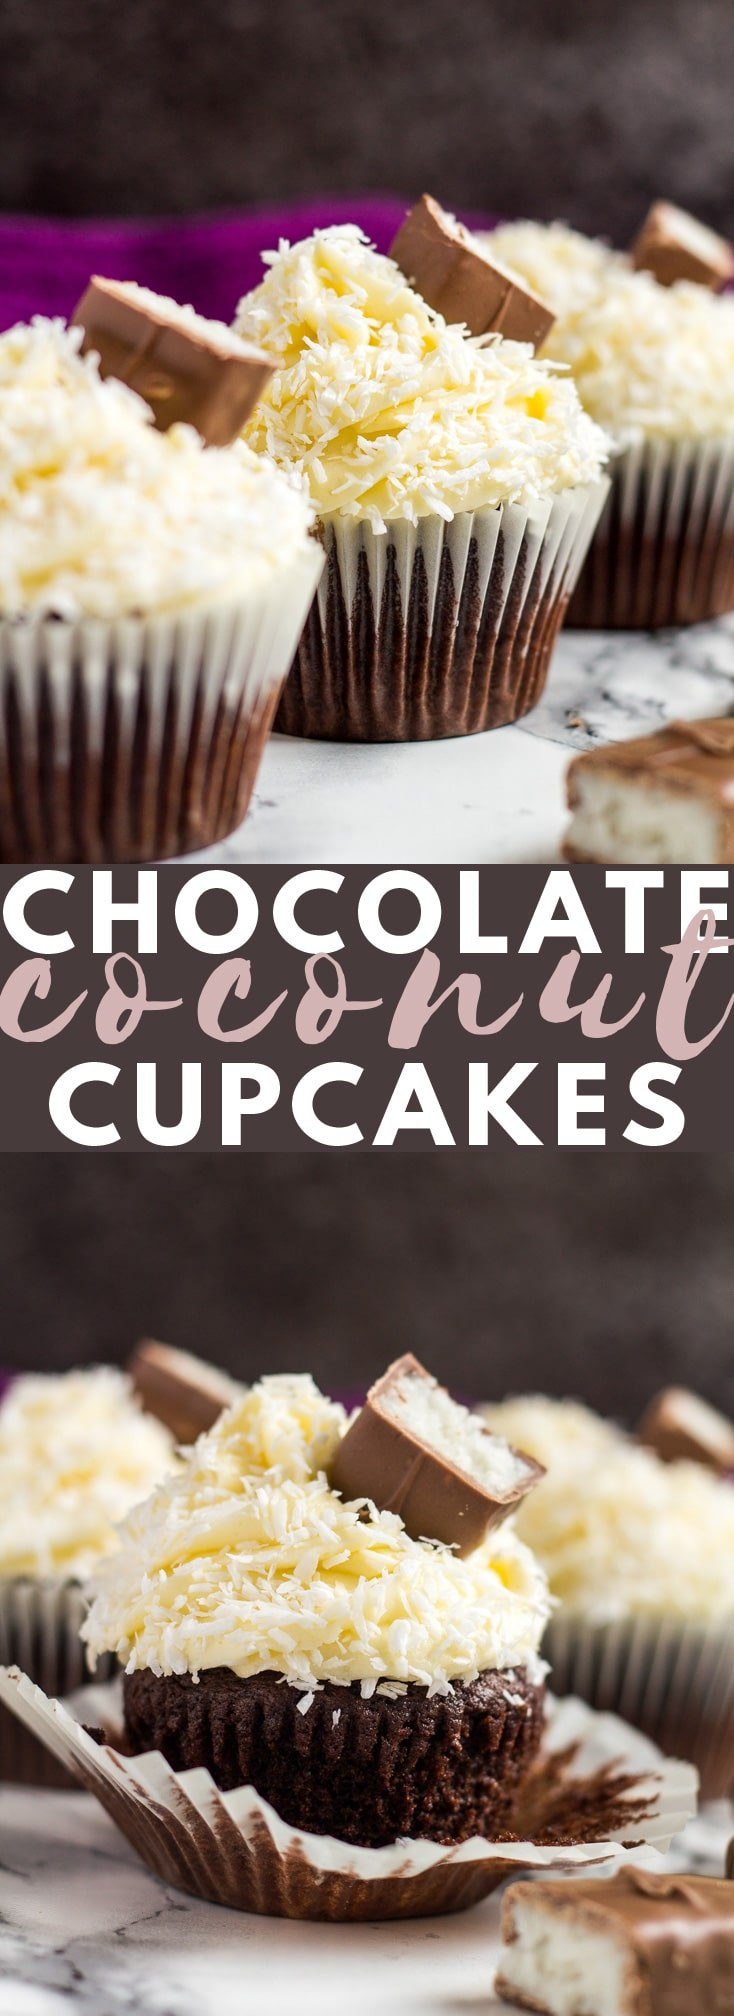 Chocolate Coconut Cupcakes - Deliciously moist and fluffy chocolate cupcakes topped with a creamy coconut-infused buttercream frosting, and coated with desiccated coconut! #chocolatecupcakes #coconut #cupcakerecipes